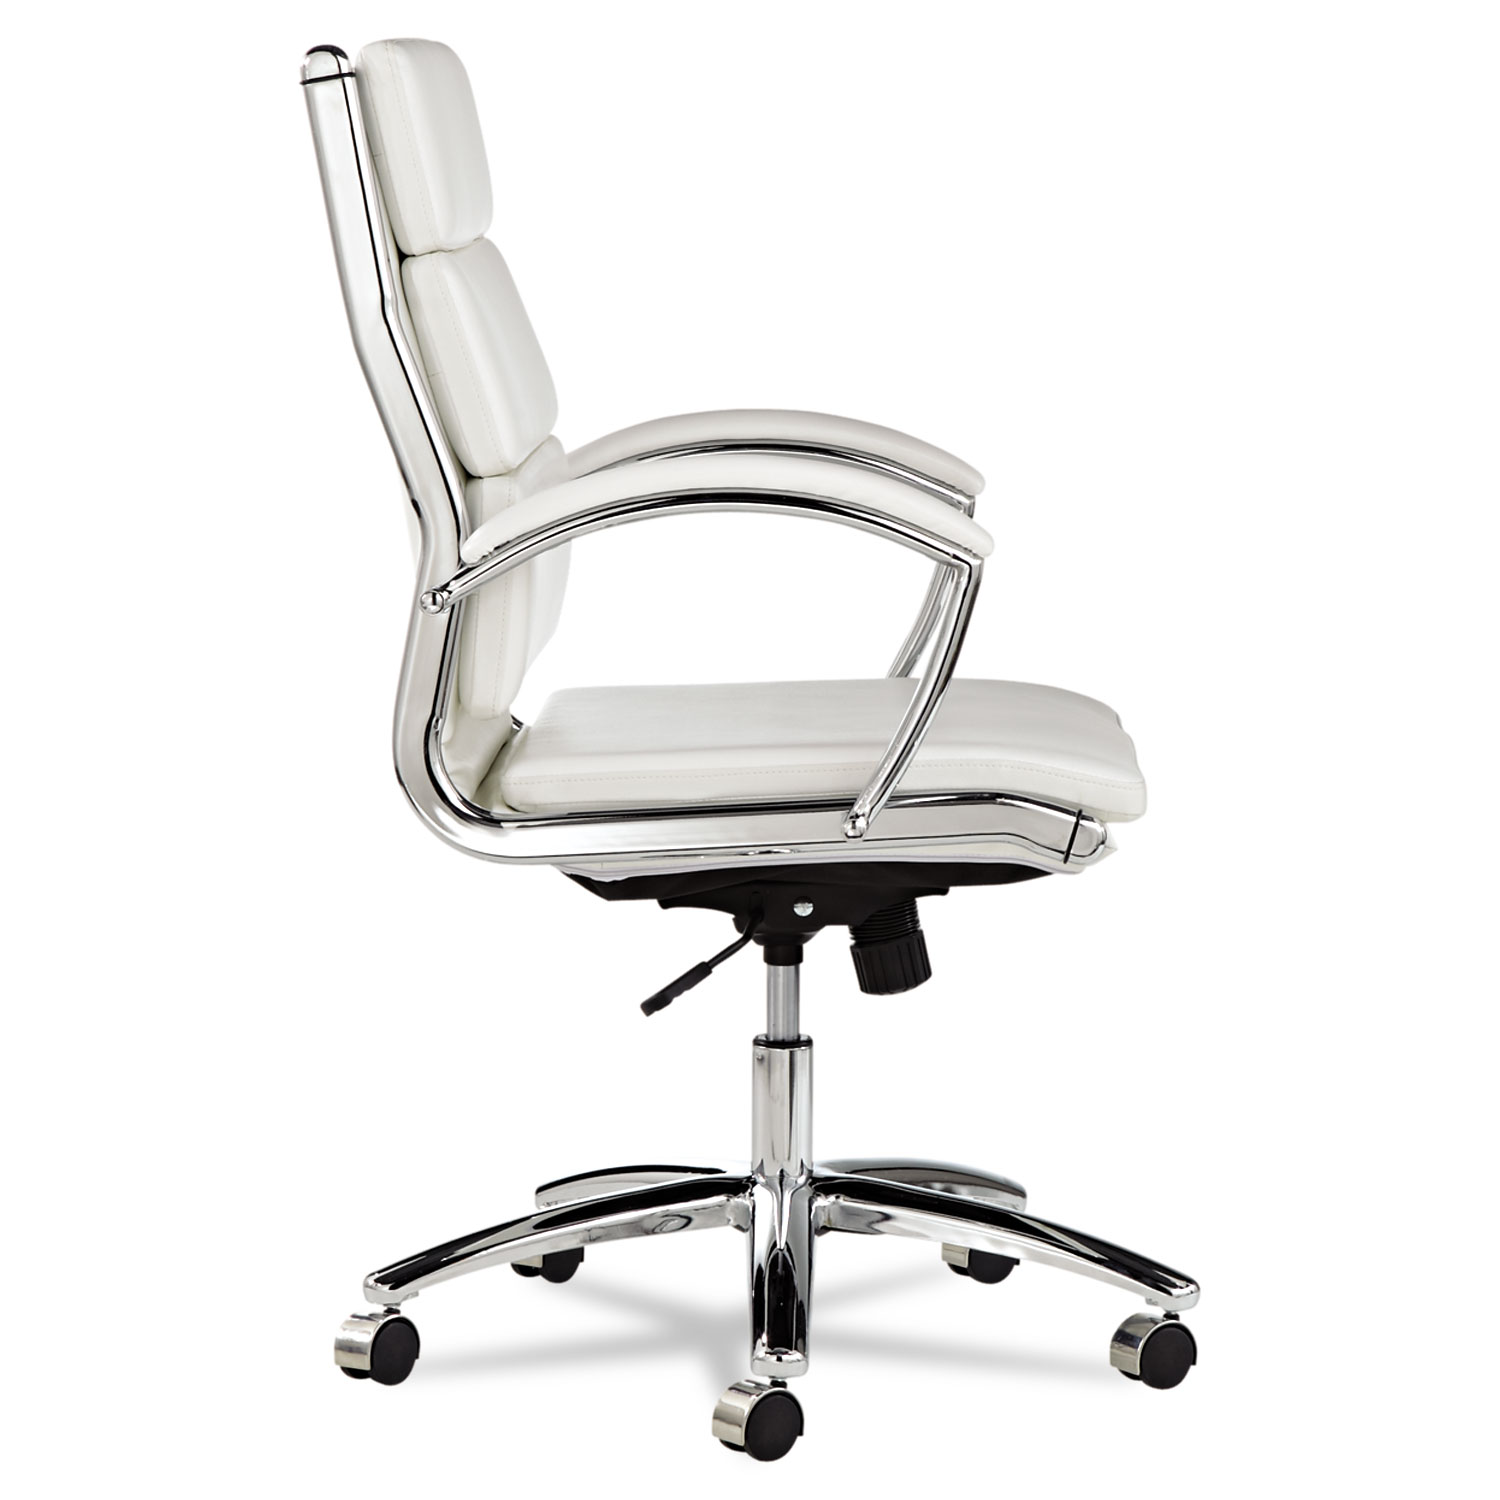 alera office chairs aluminum for sale neratoli mid back slim profile chair by alenr4206 thumbnail 1 2